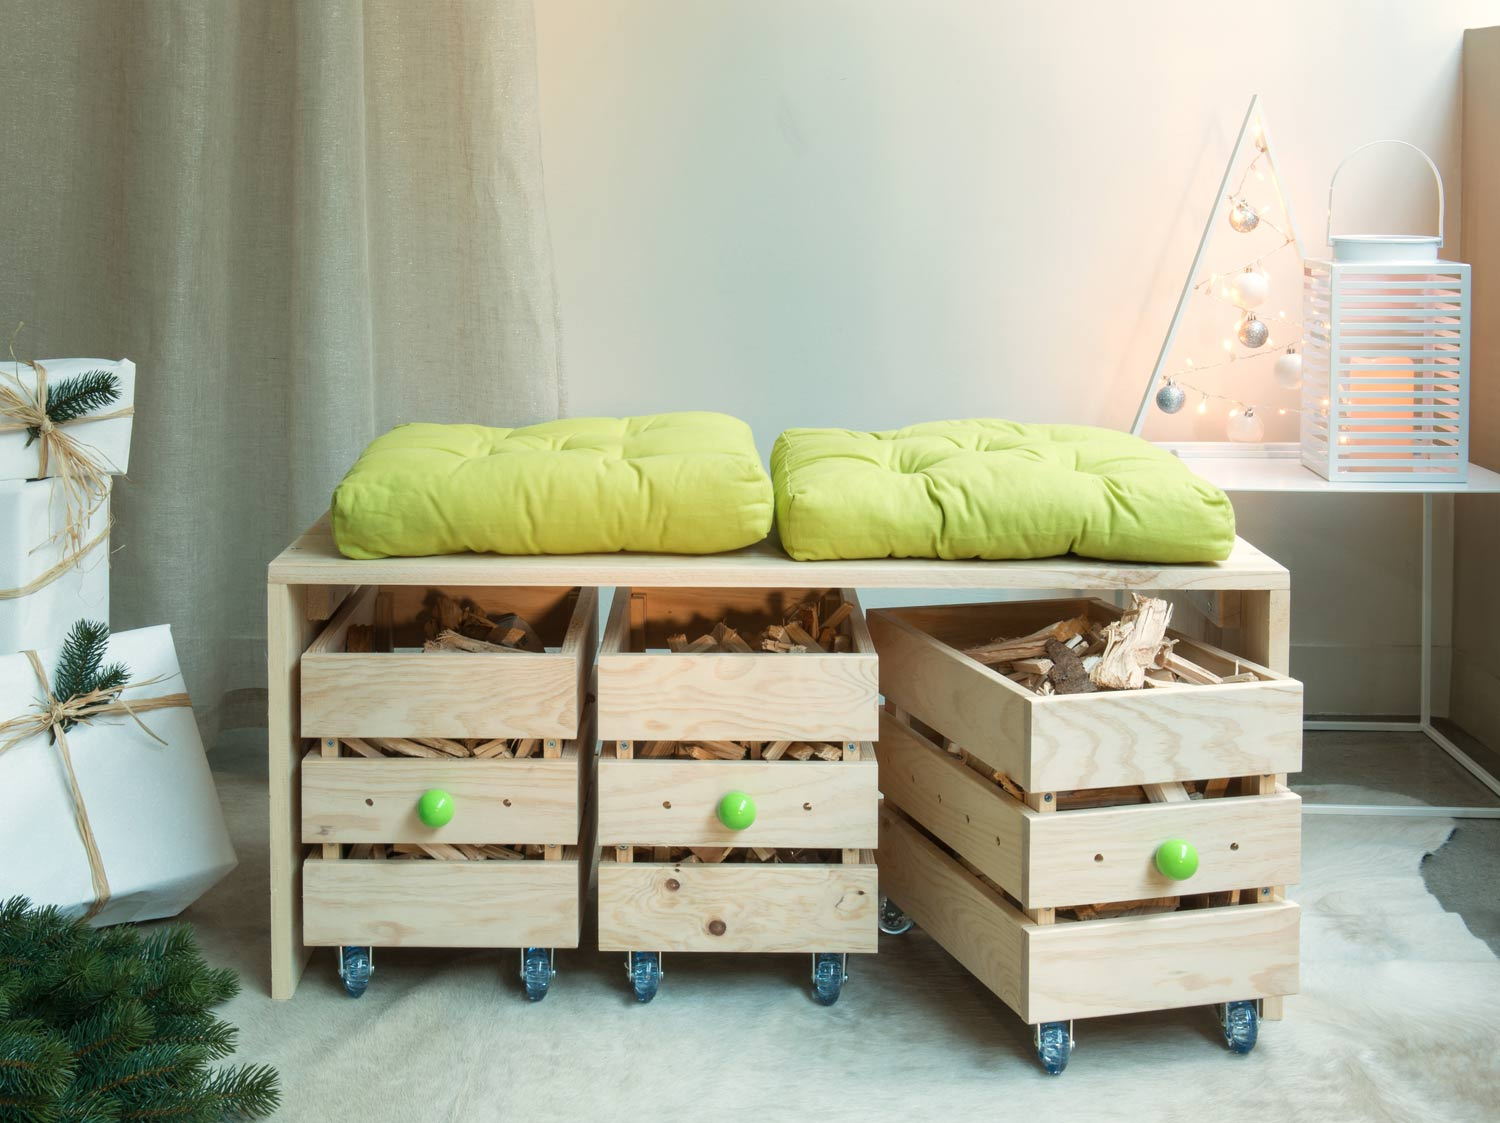 diy r aliser un banc en bois avec des rangements roulettes leroy merlin. Black Bedroom Furniture Sets. Home Design Ideas